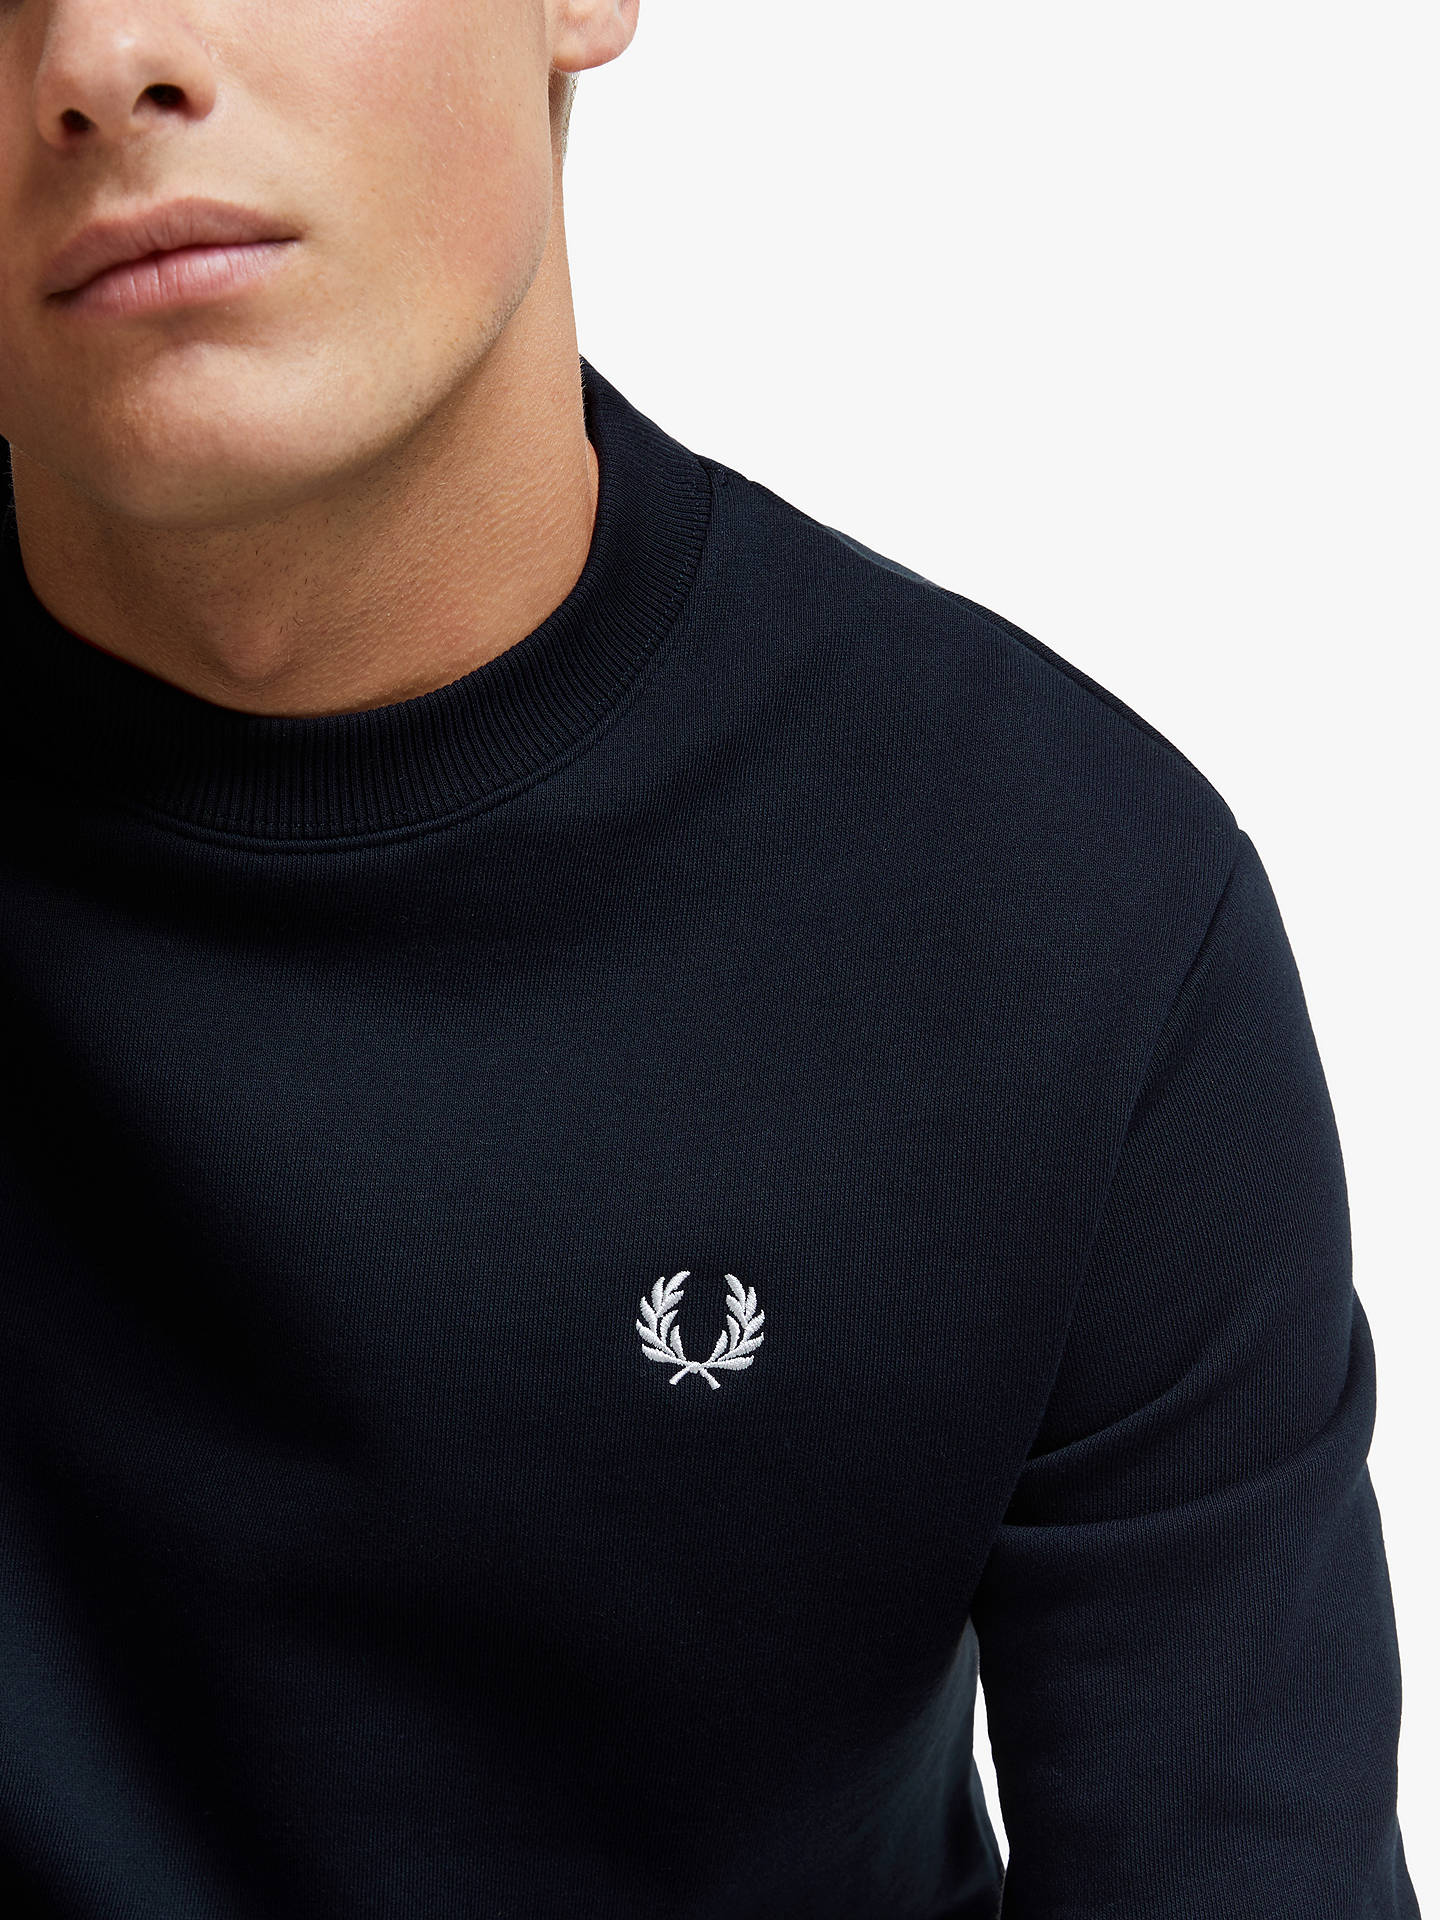 Buy Fred Perry Crew Neck Sweatshirt, Navy, S Online at johnlewis.com